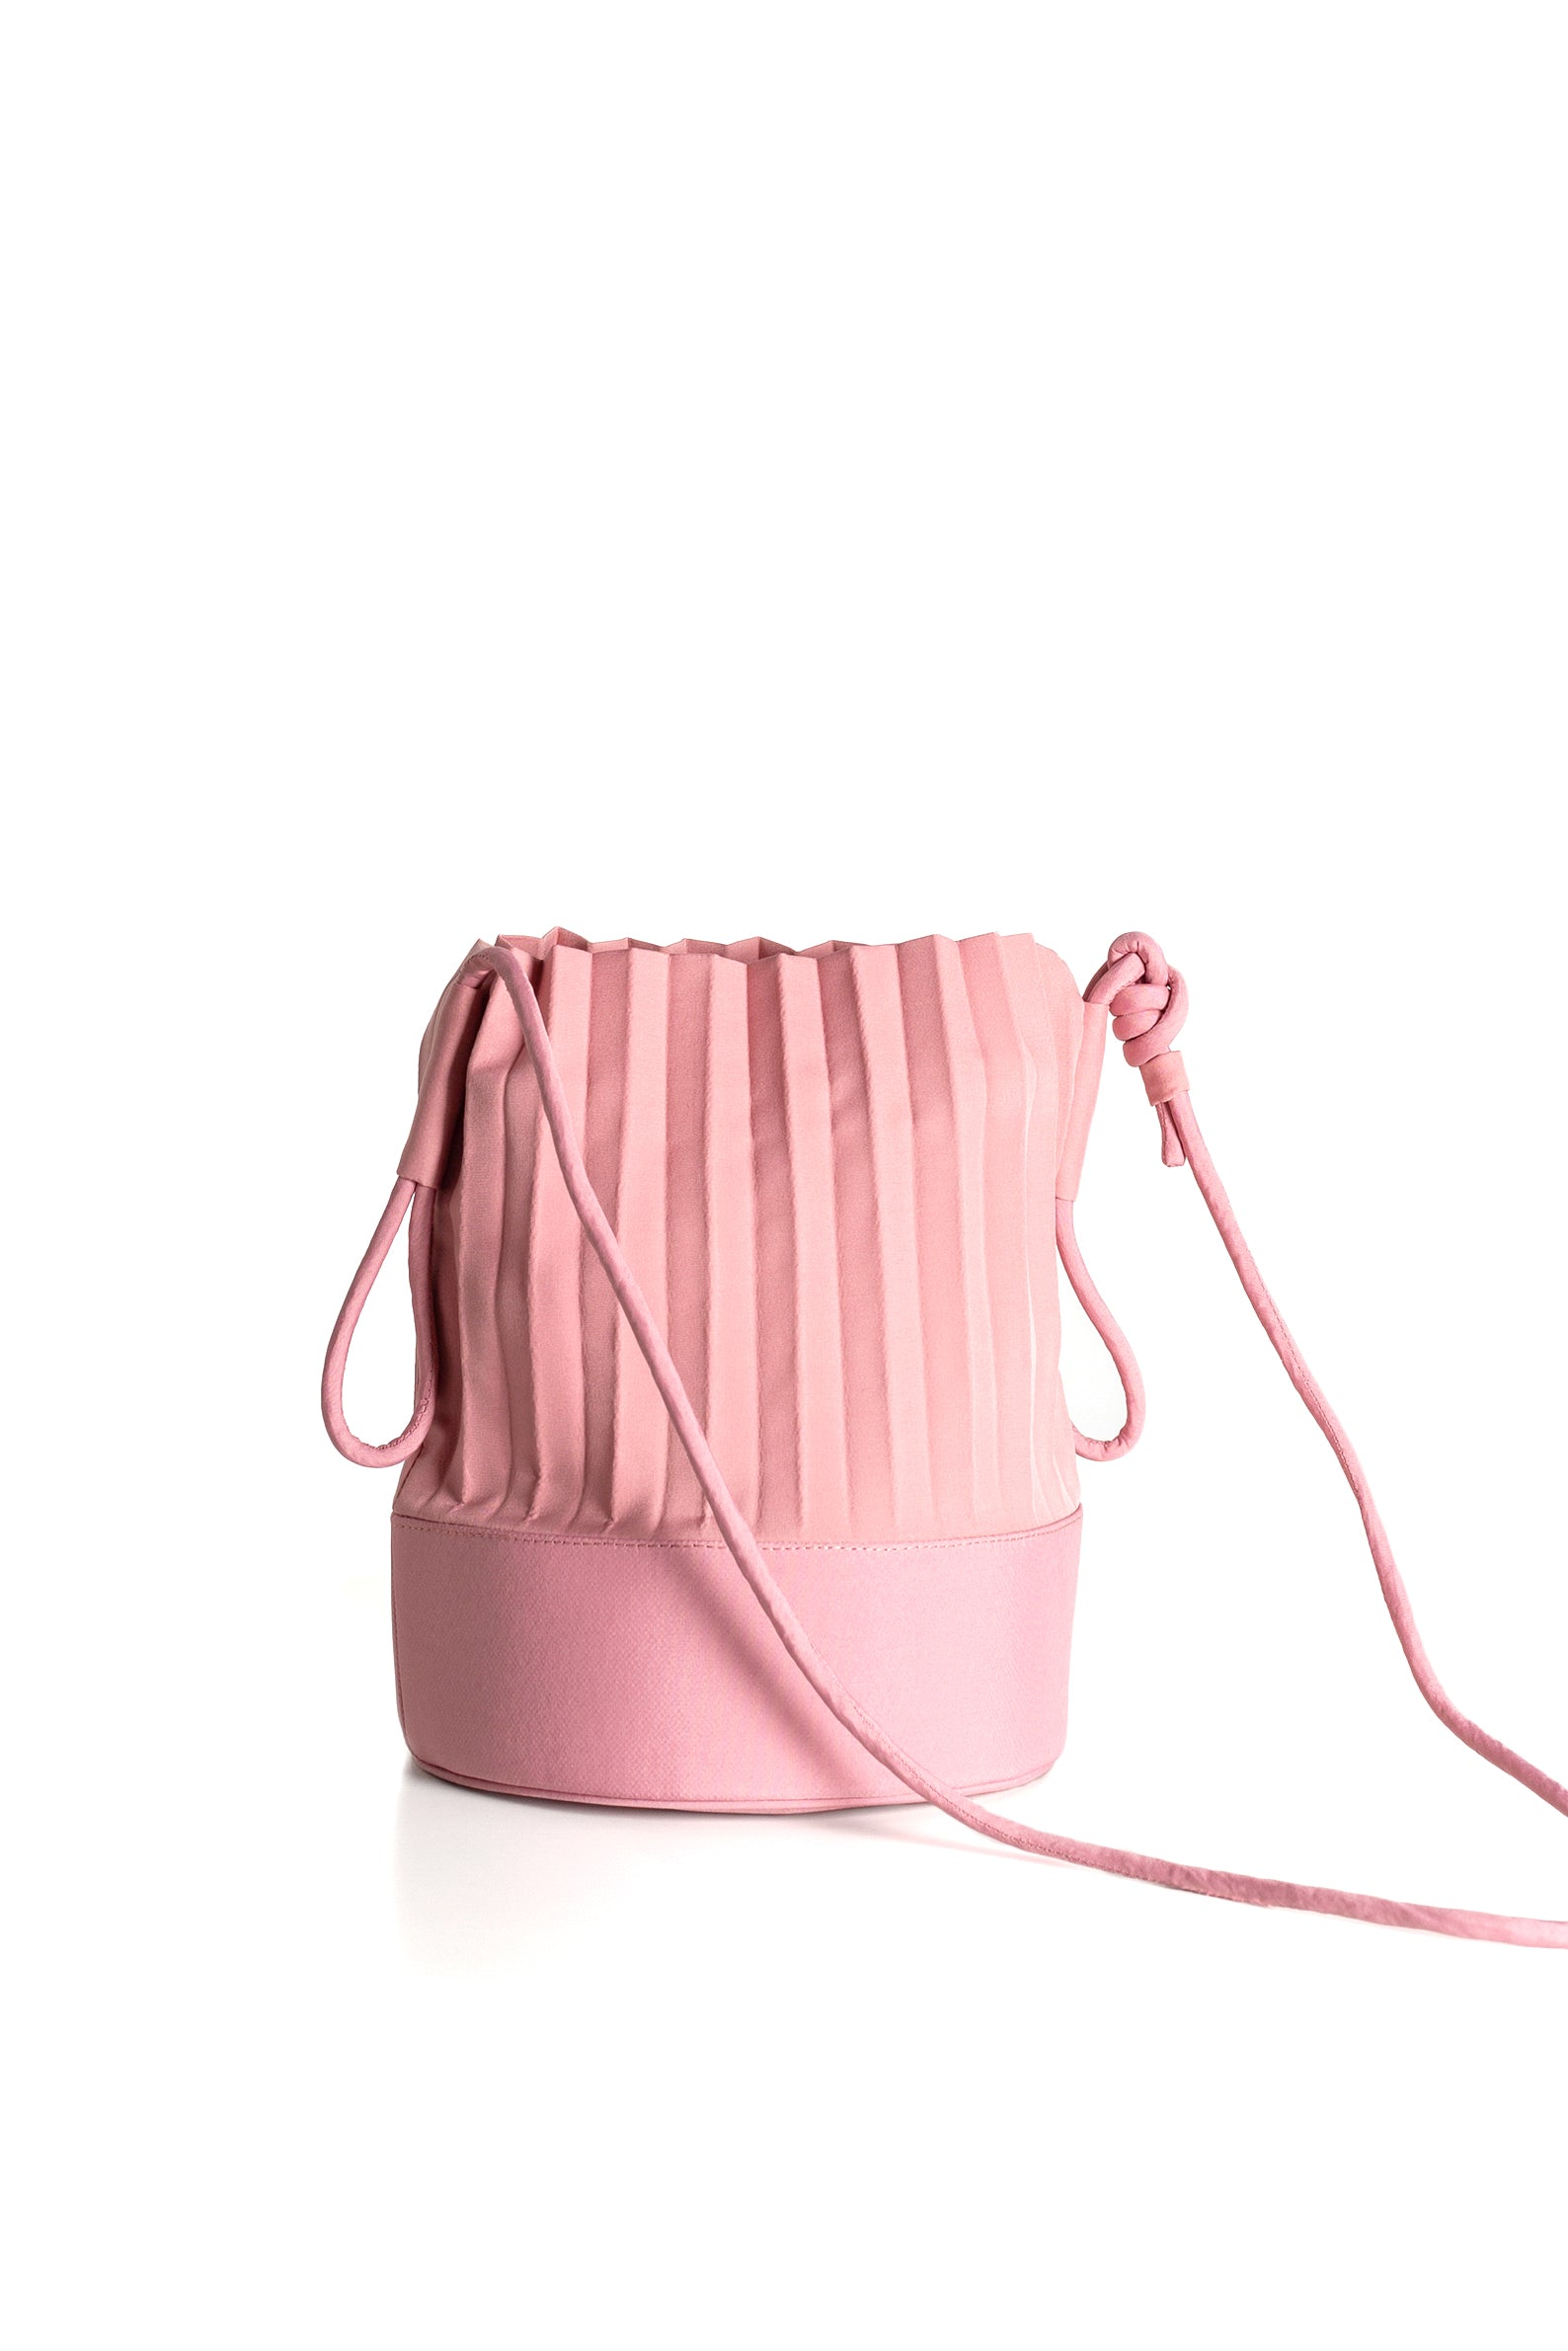 aPail | Bucket bag in Rose Pink